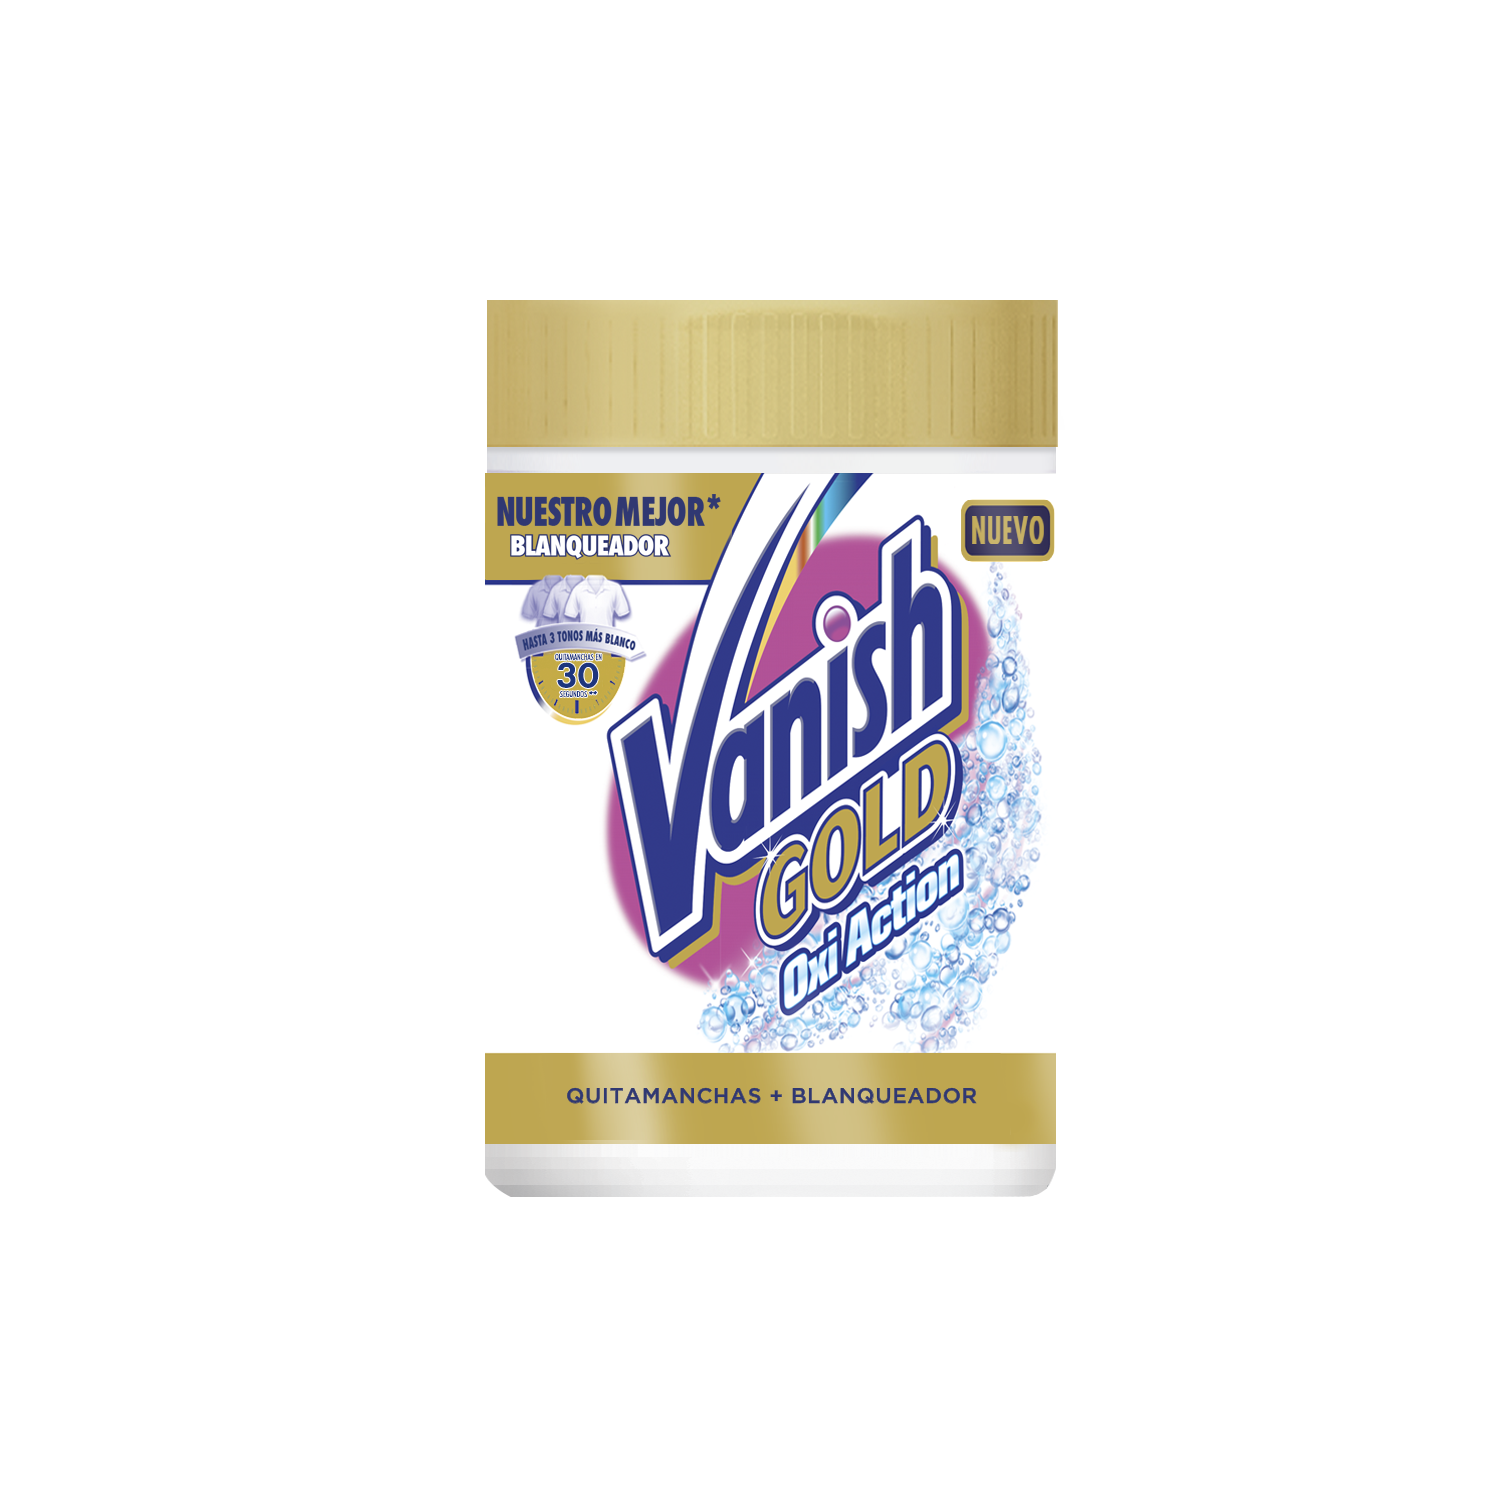 Vanish quitamanchas blanqueador gold oxiaction de 940g.